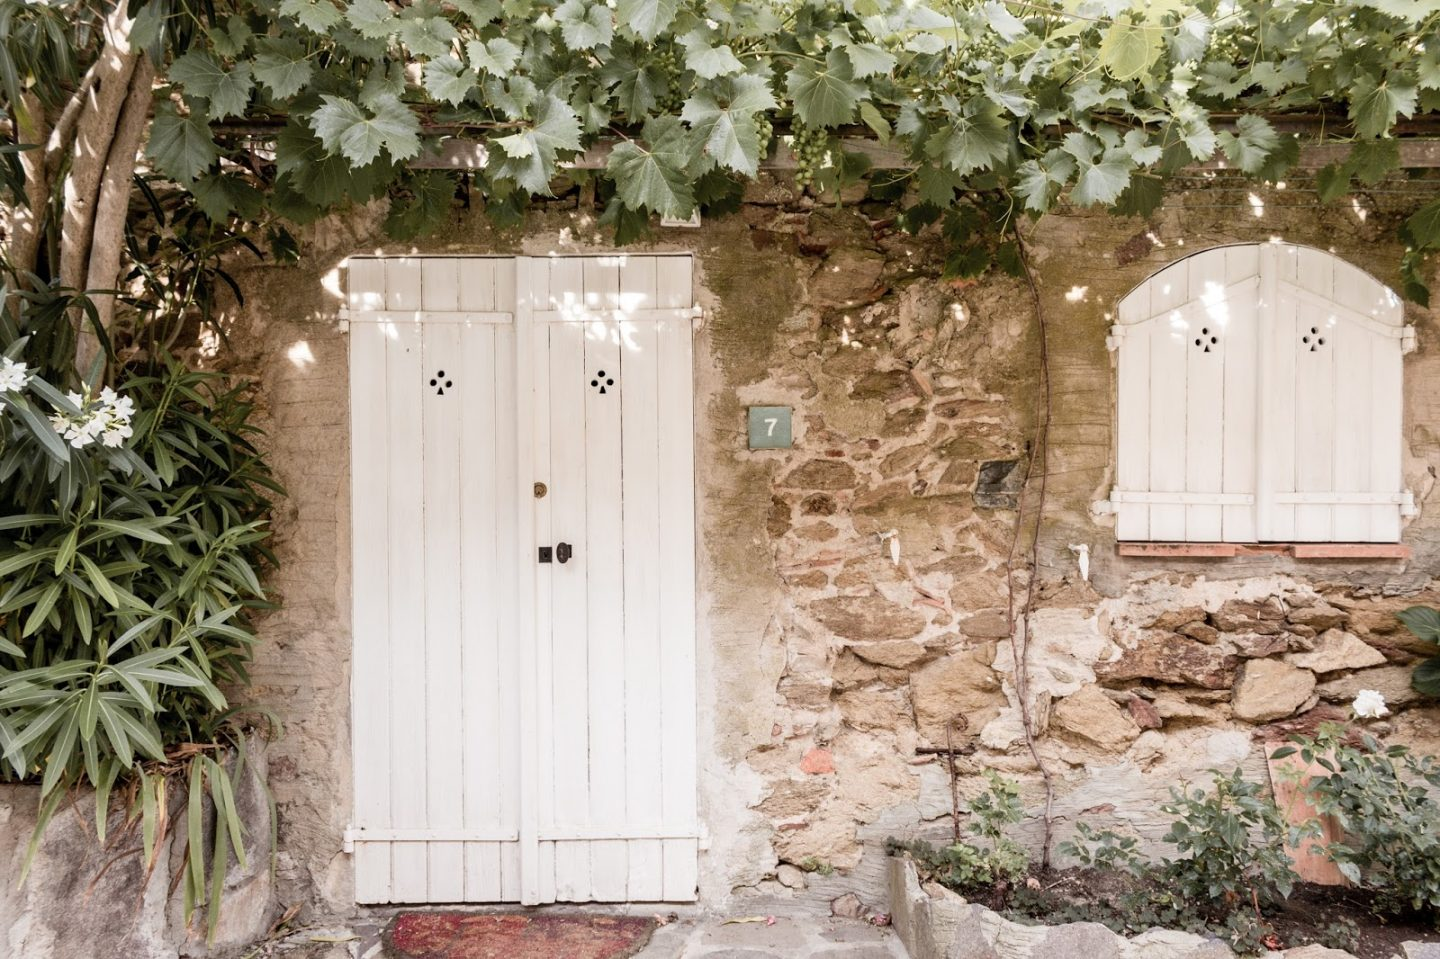 French farmhouse with stone, lush greenery, and white doors. Photo: The Flying Dutchwoman. #frenchfarmhouse #rustic #stone #oldworld #vintagedoors